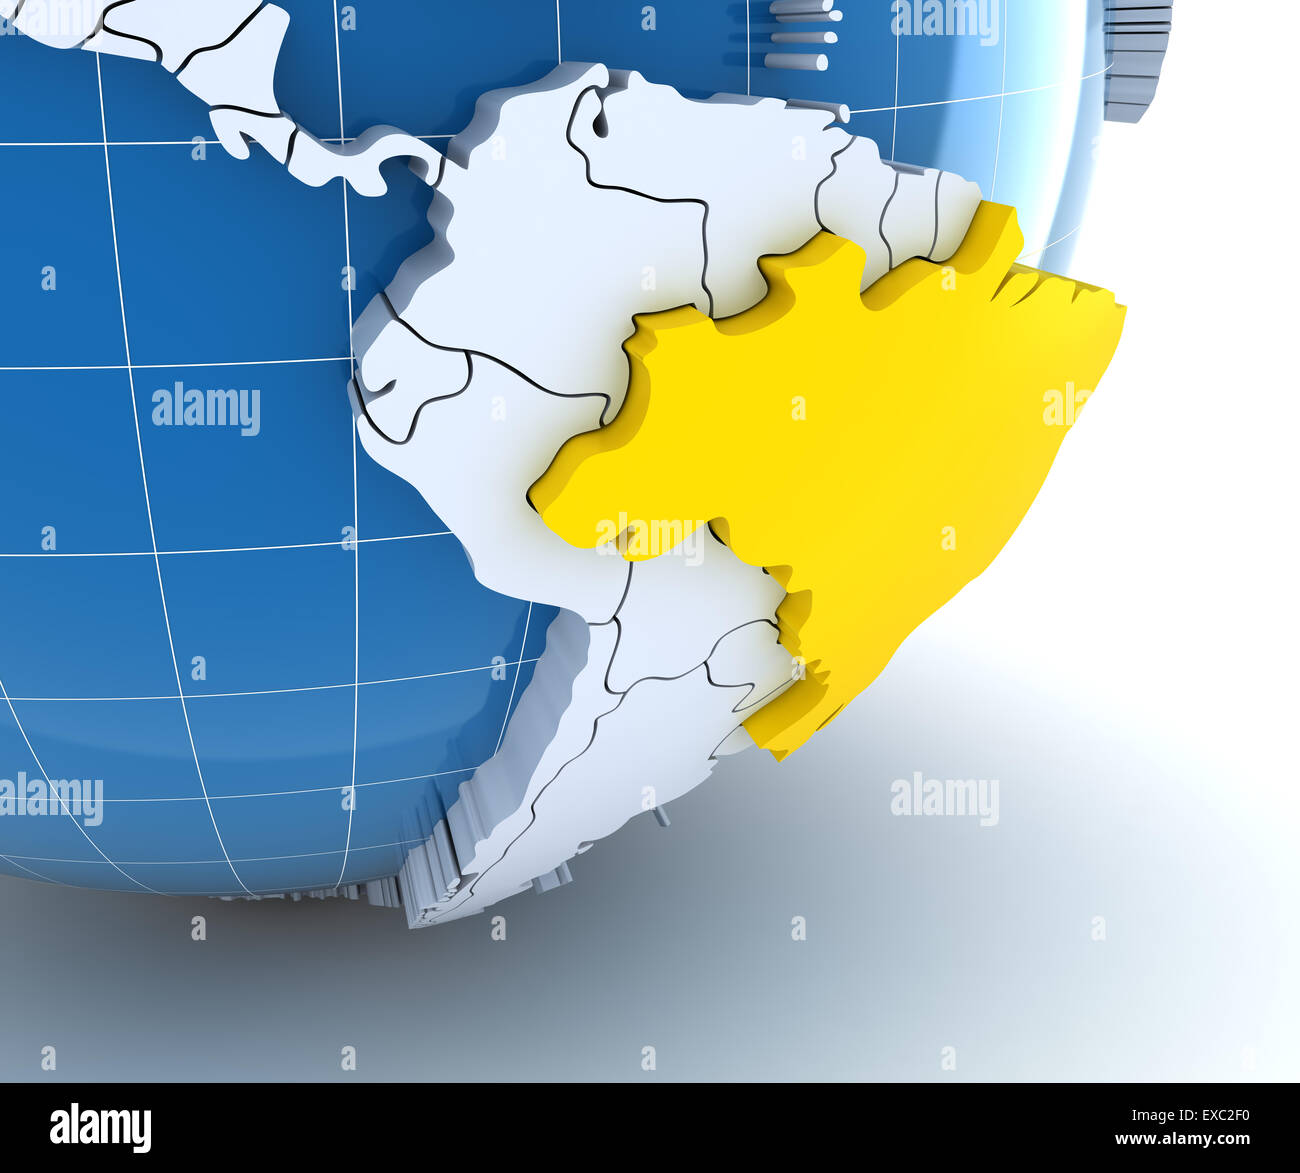 Brazil map globe stock photos brazil map globe stock images alamy globe with extruded continents close up on brazil stock image gumiabroncs Image collections